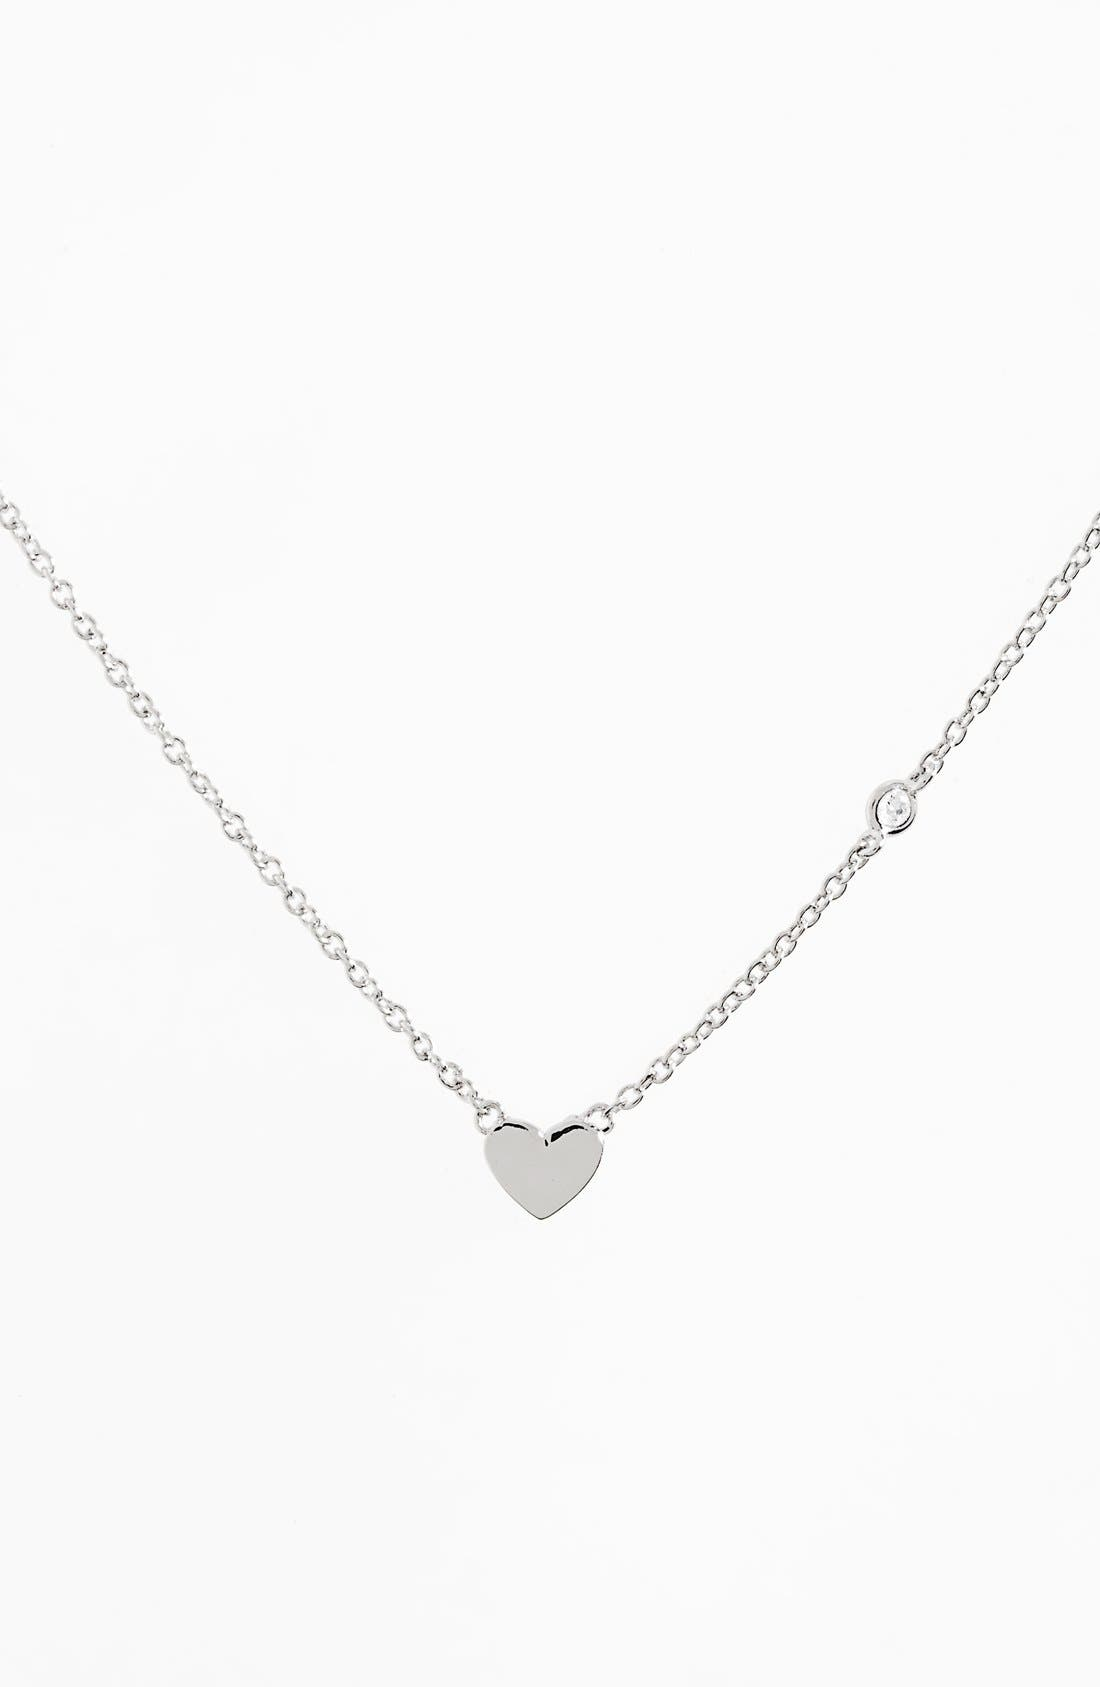 Heart Necklace,                             Main thumbnail 1, color,                             Silver